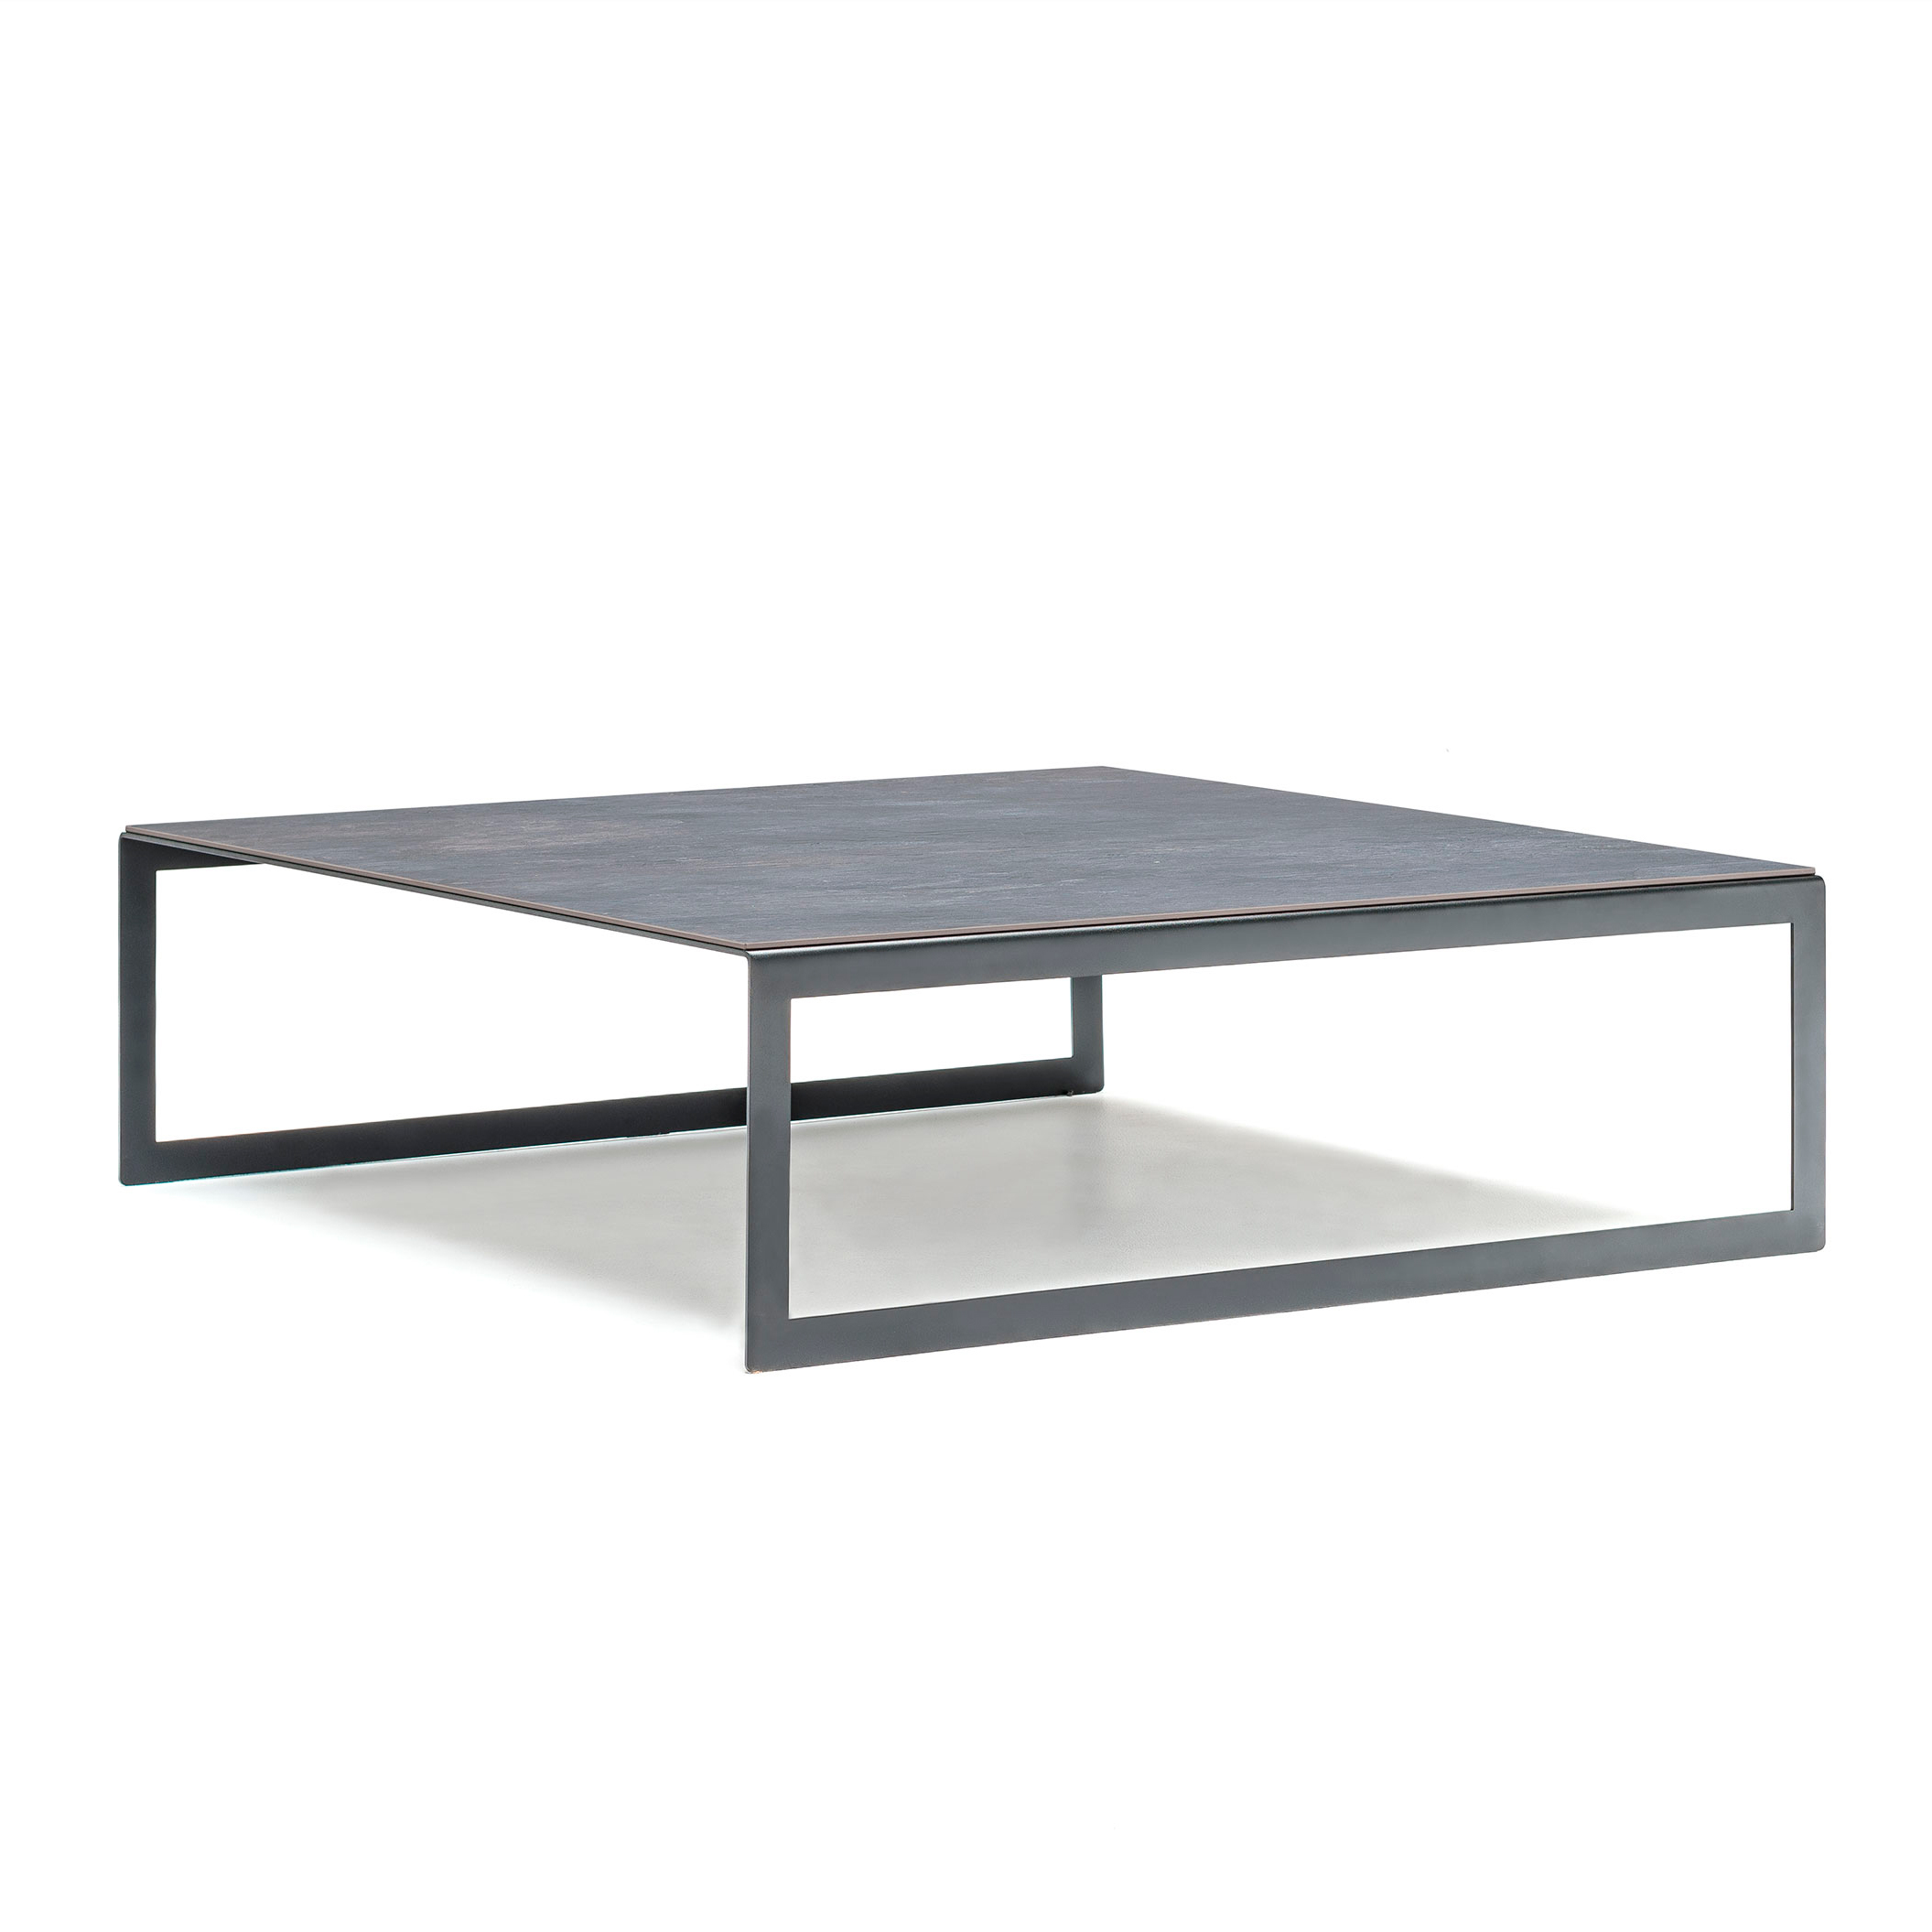 Luxury Italian Kitano Coffee Table Italian Designer & Luxury